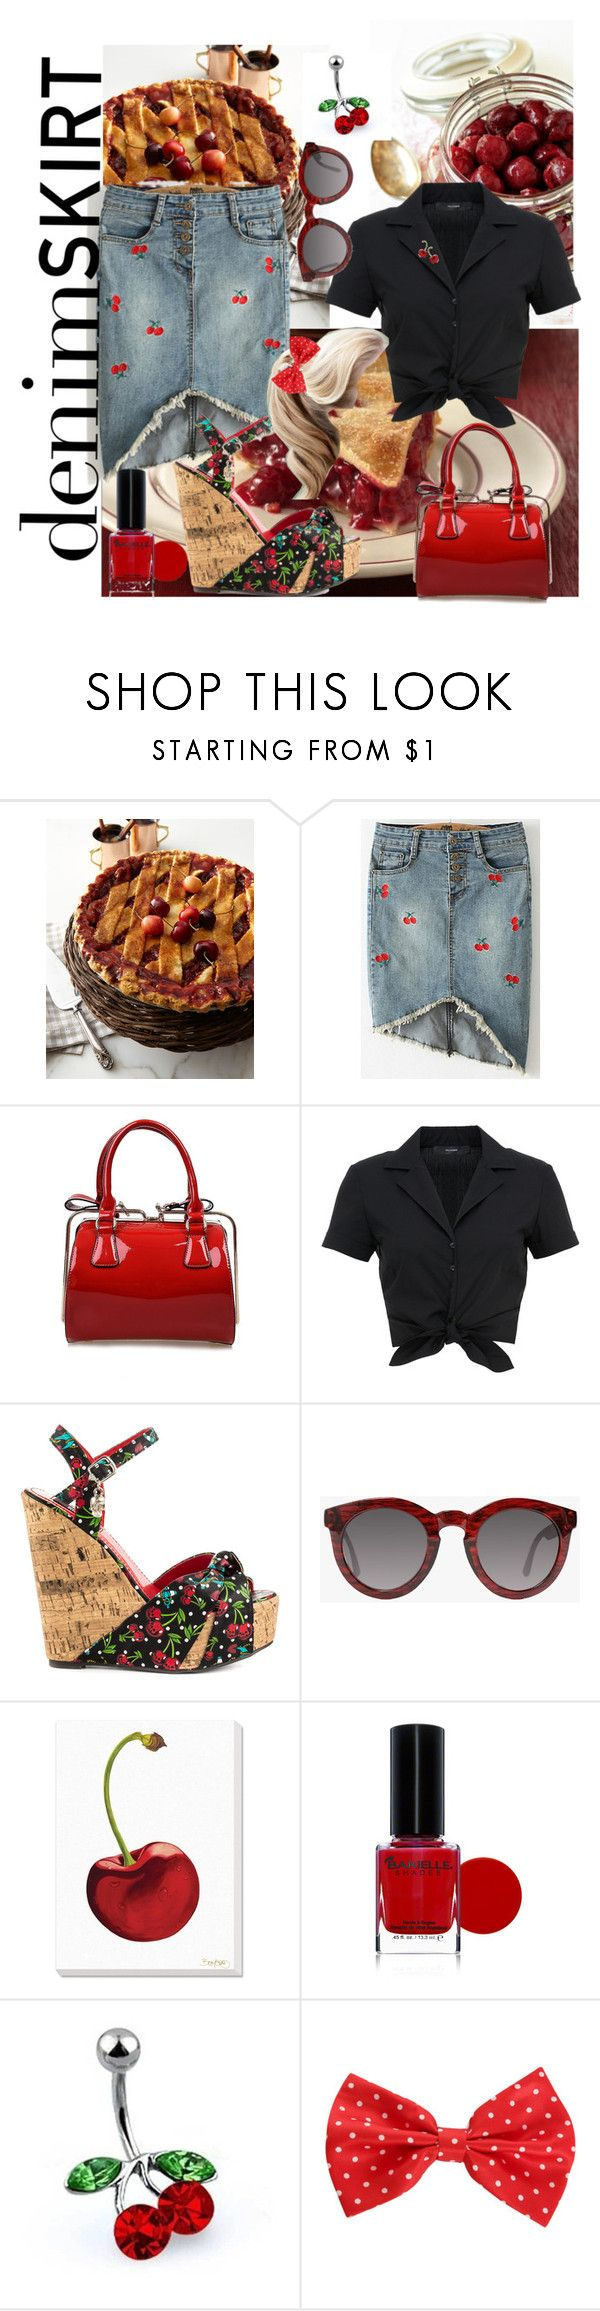 """""""Sweet Denim Skirt"""" by shelley-harcar ❤ liked on Polyvore featuring Sweet Lady Jane, Hallhuber, Iron Fist, Crap, Grandin Road, BARIELLE, Bling Jewelry, Hot Topic and denimskirt"""